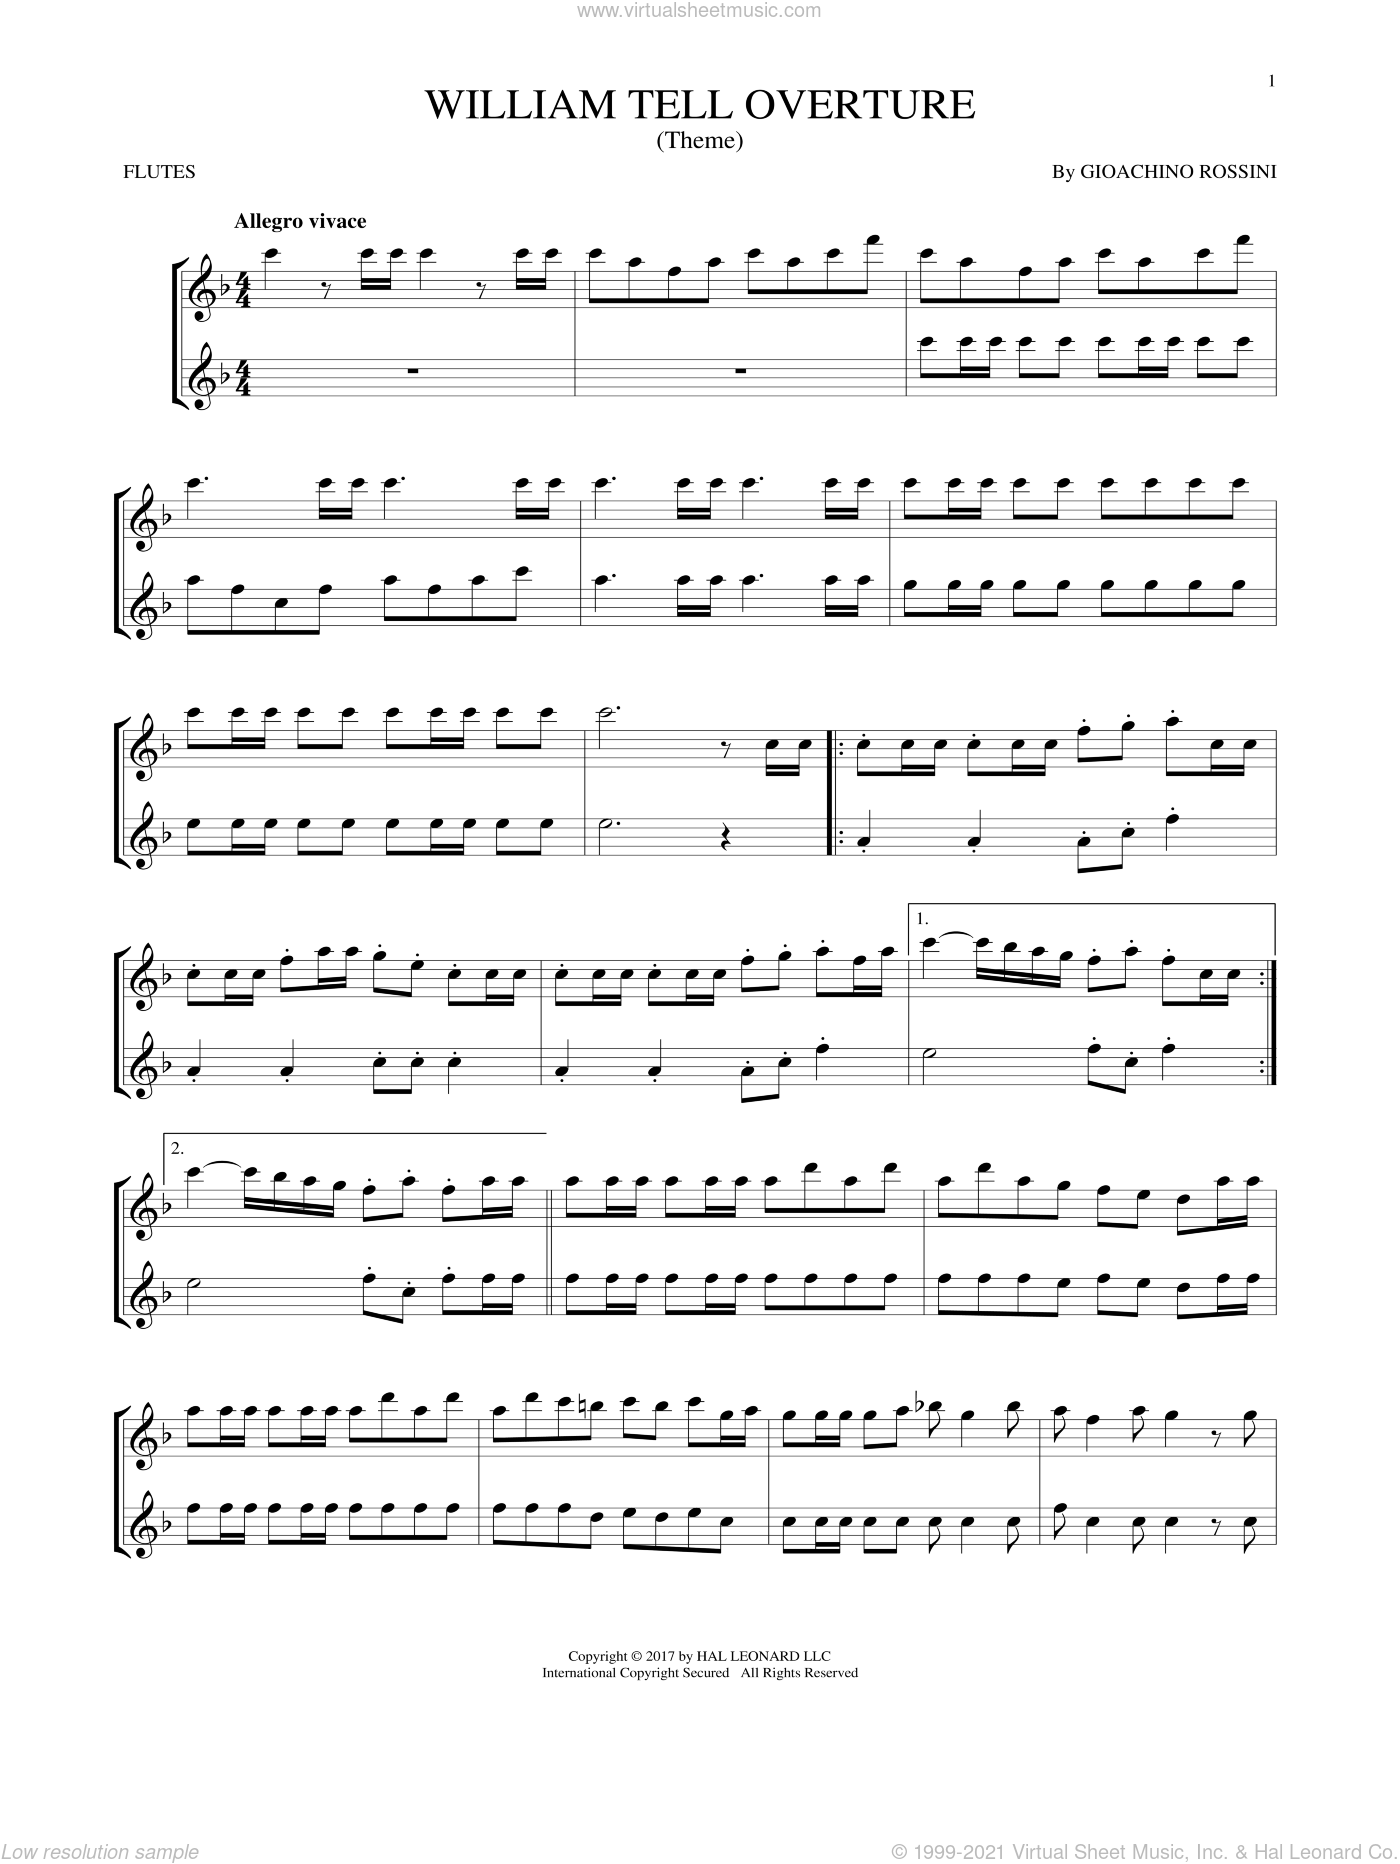 William Tell Overture sheet music for two flutes (duets) by Rossini, Gioacchino, classical score, intermediate skill level